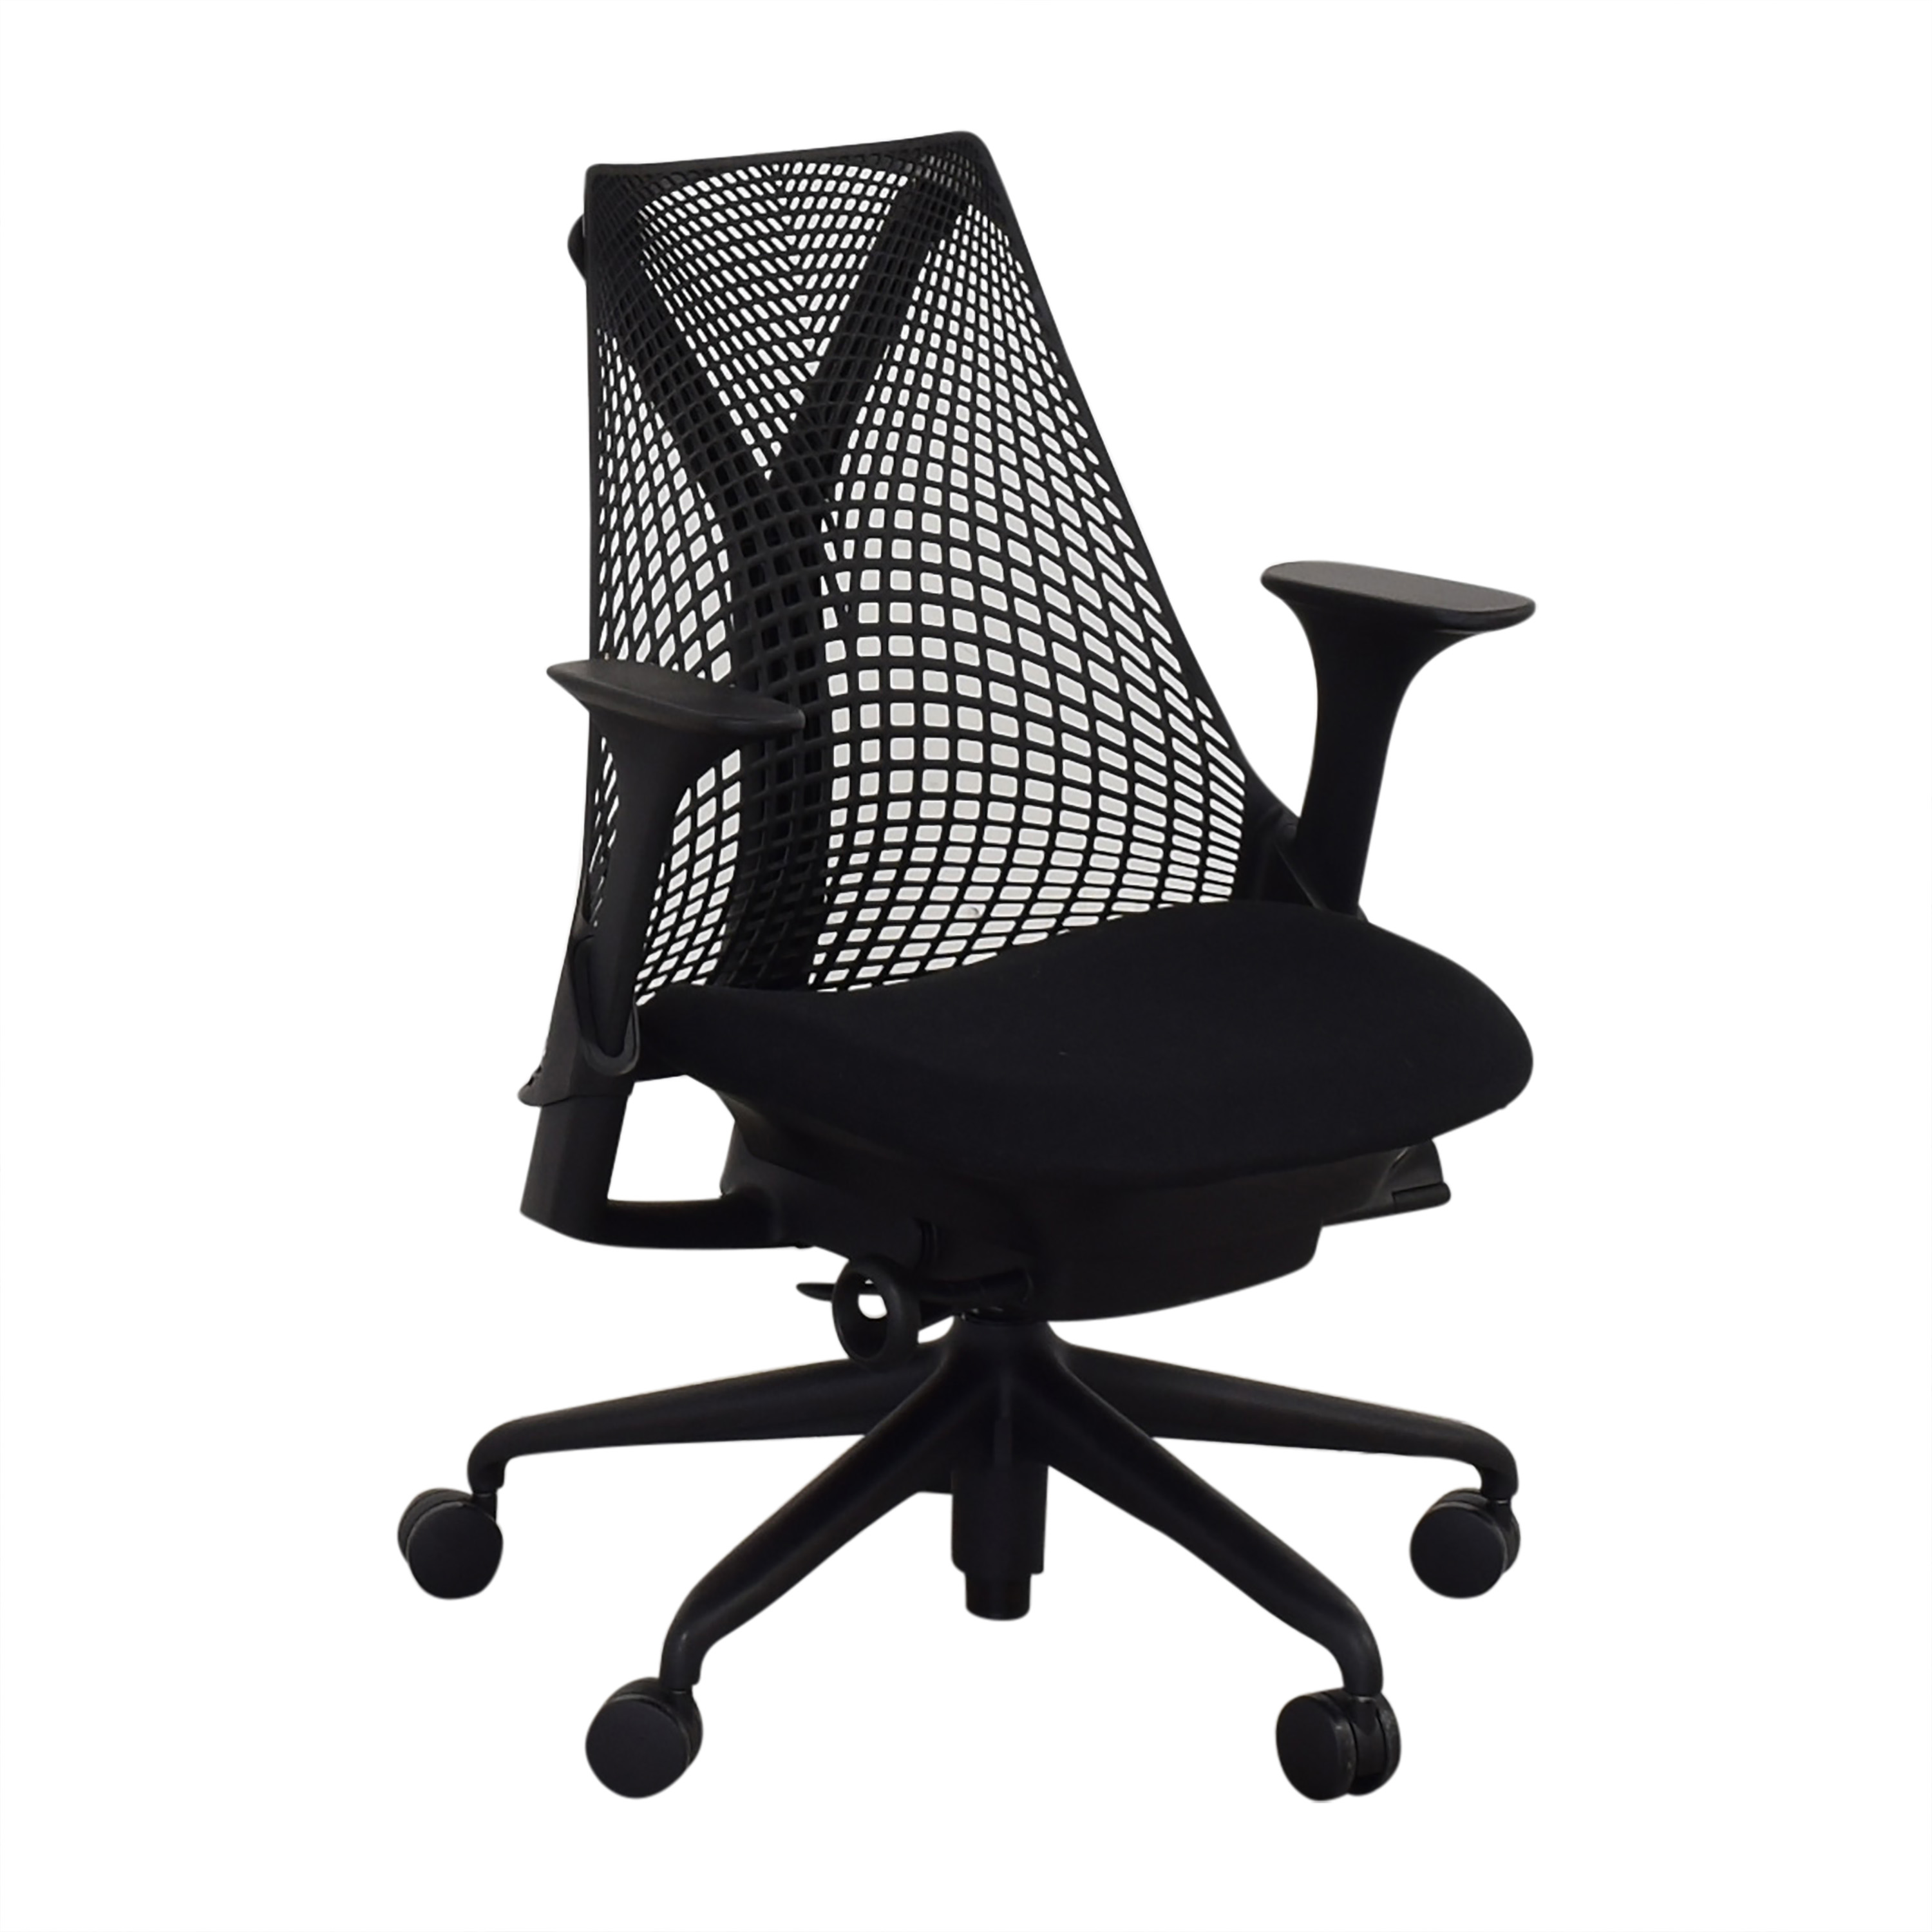 Herman Miller Sayl Office Chair / Chairs